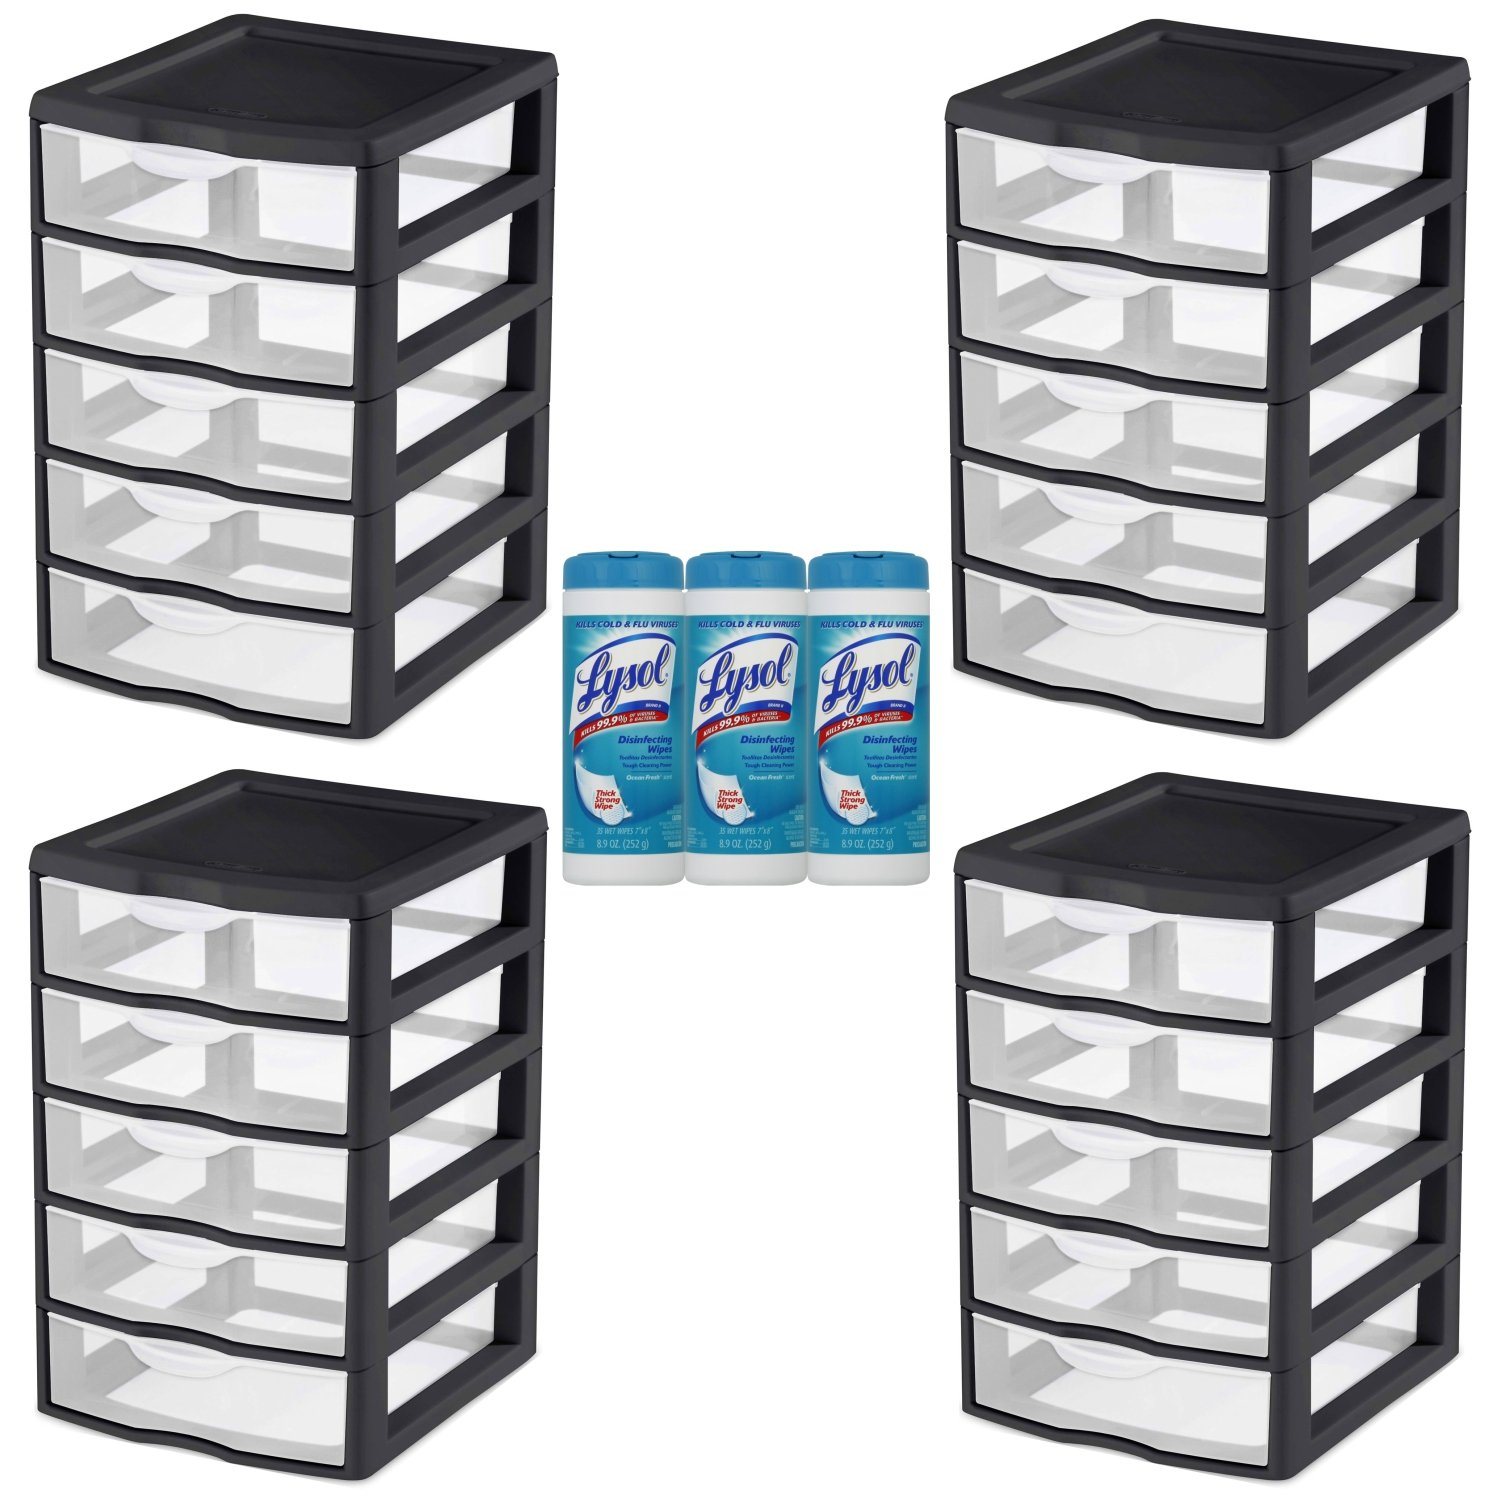 Buy Sterilite Small 5 Drawer Storage Unit Case Of 4 In Black With